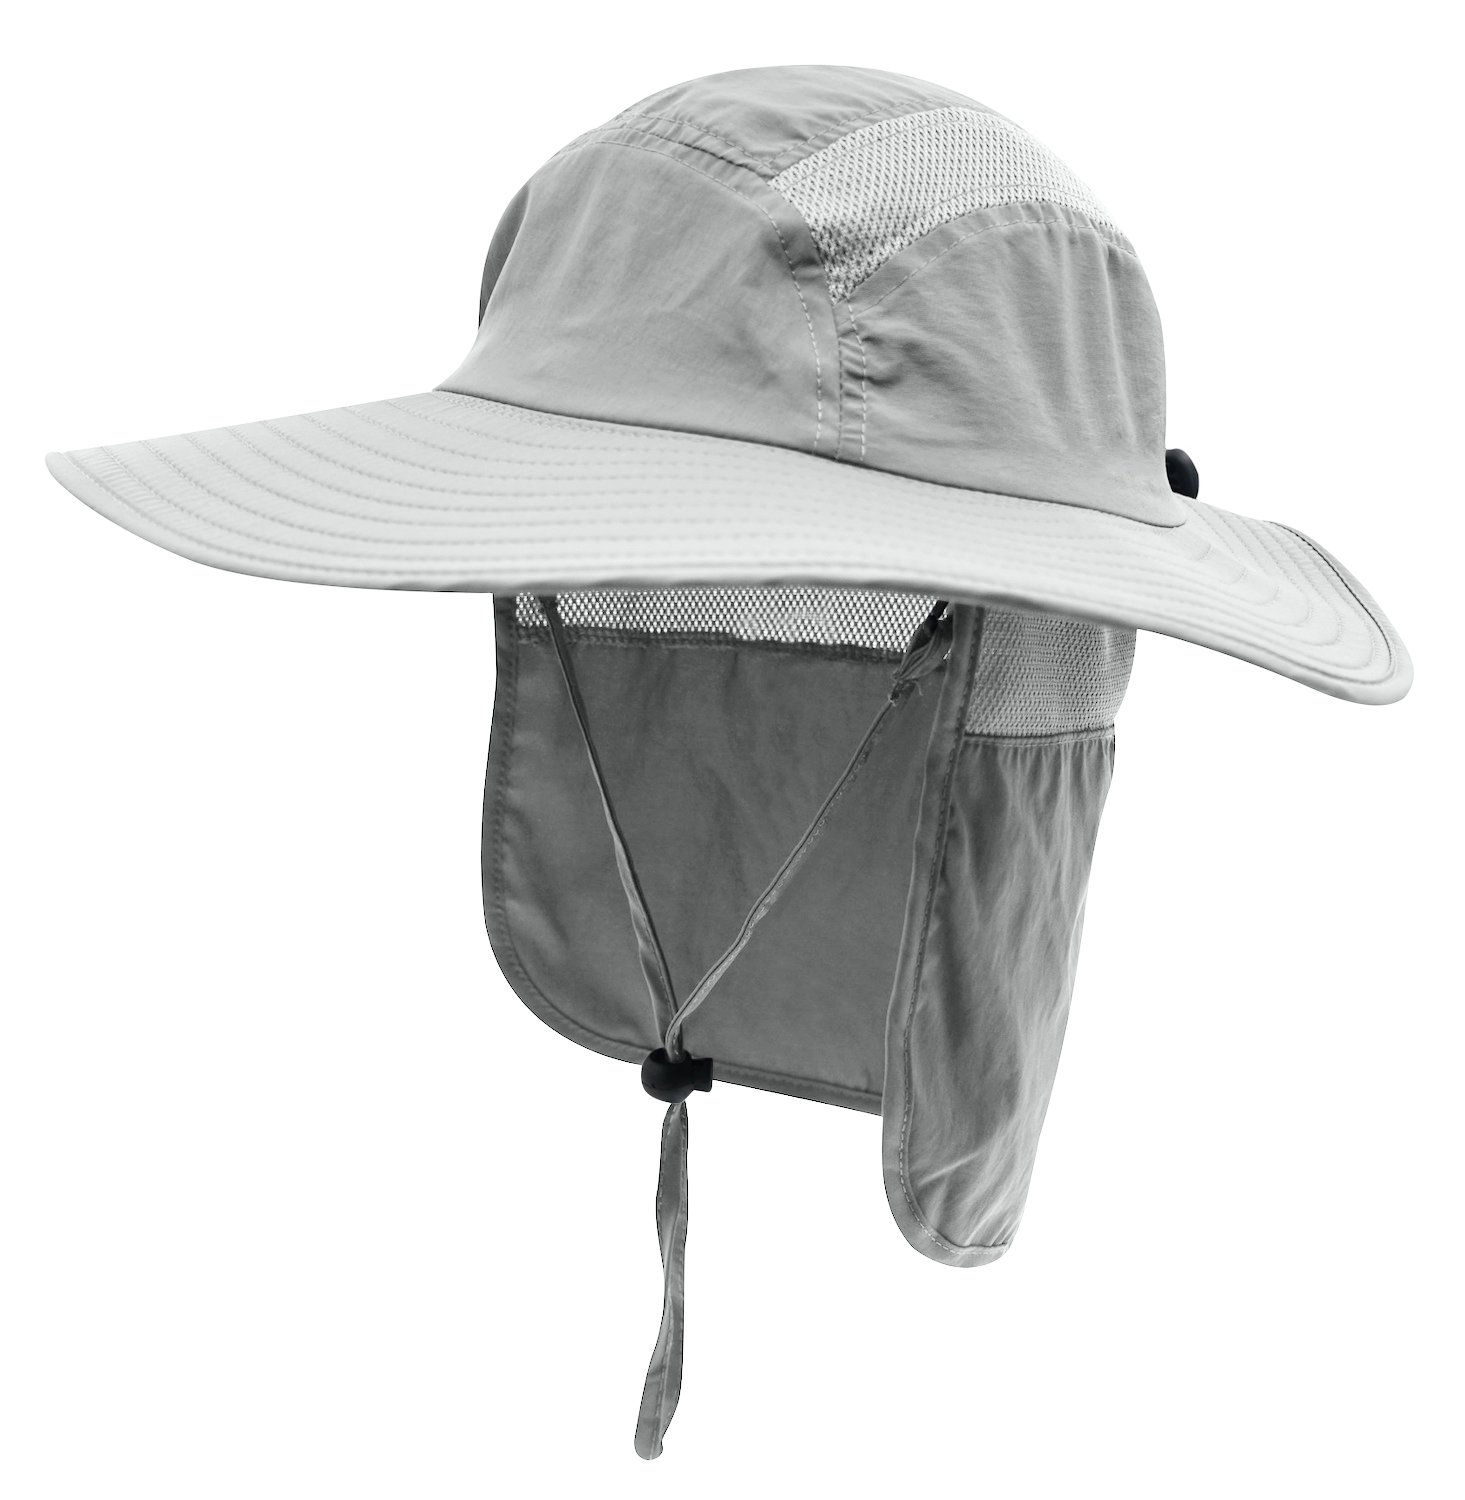 Home Prefer Mens UPF 50+ Sun Protection Cap Wide Brim Fishing Hat with Neck Flap (Light Gray) by Home Prefer